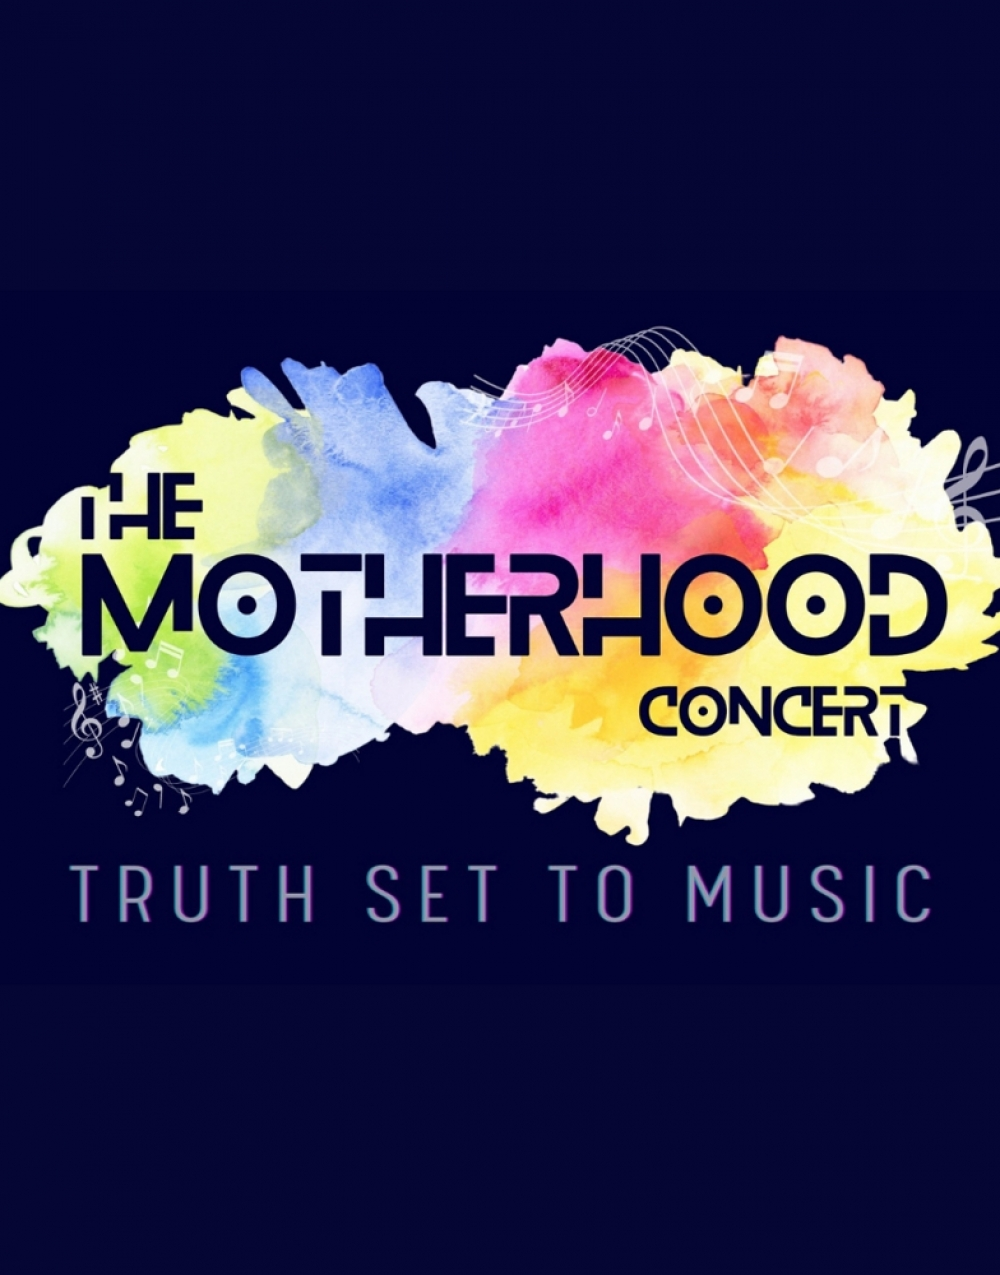 The Motherhood Concert at PAAL Theatre